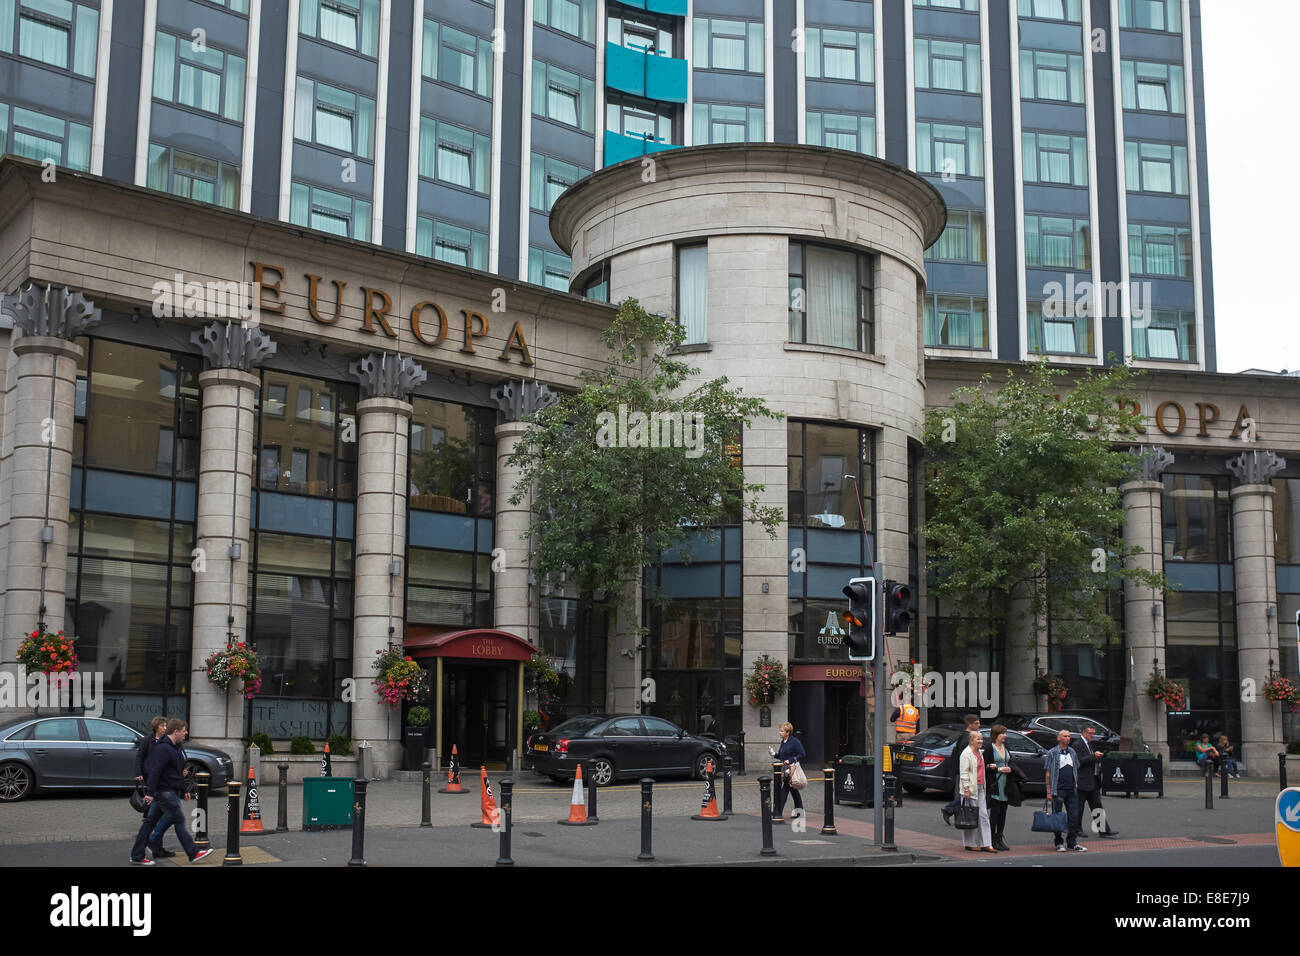 Entrance to the Europa Hotel in Belfast city centre - Stock Image